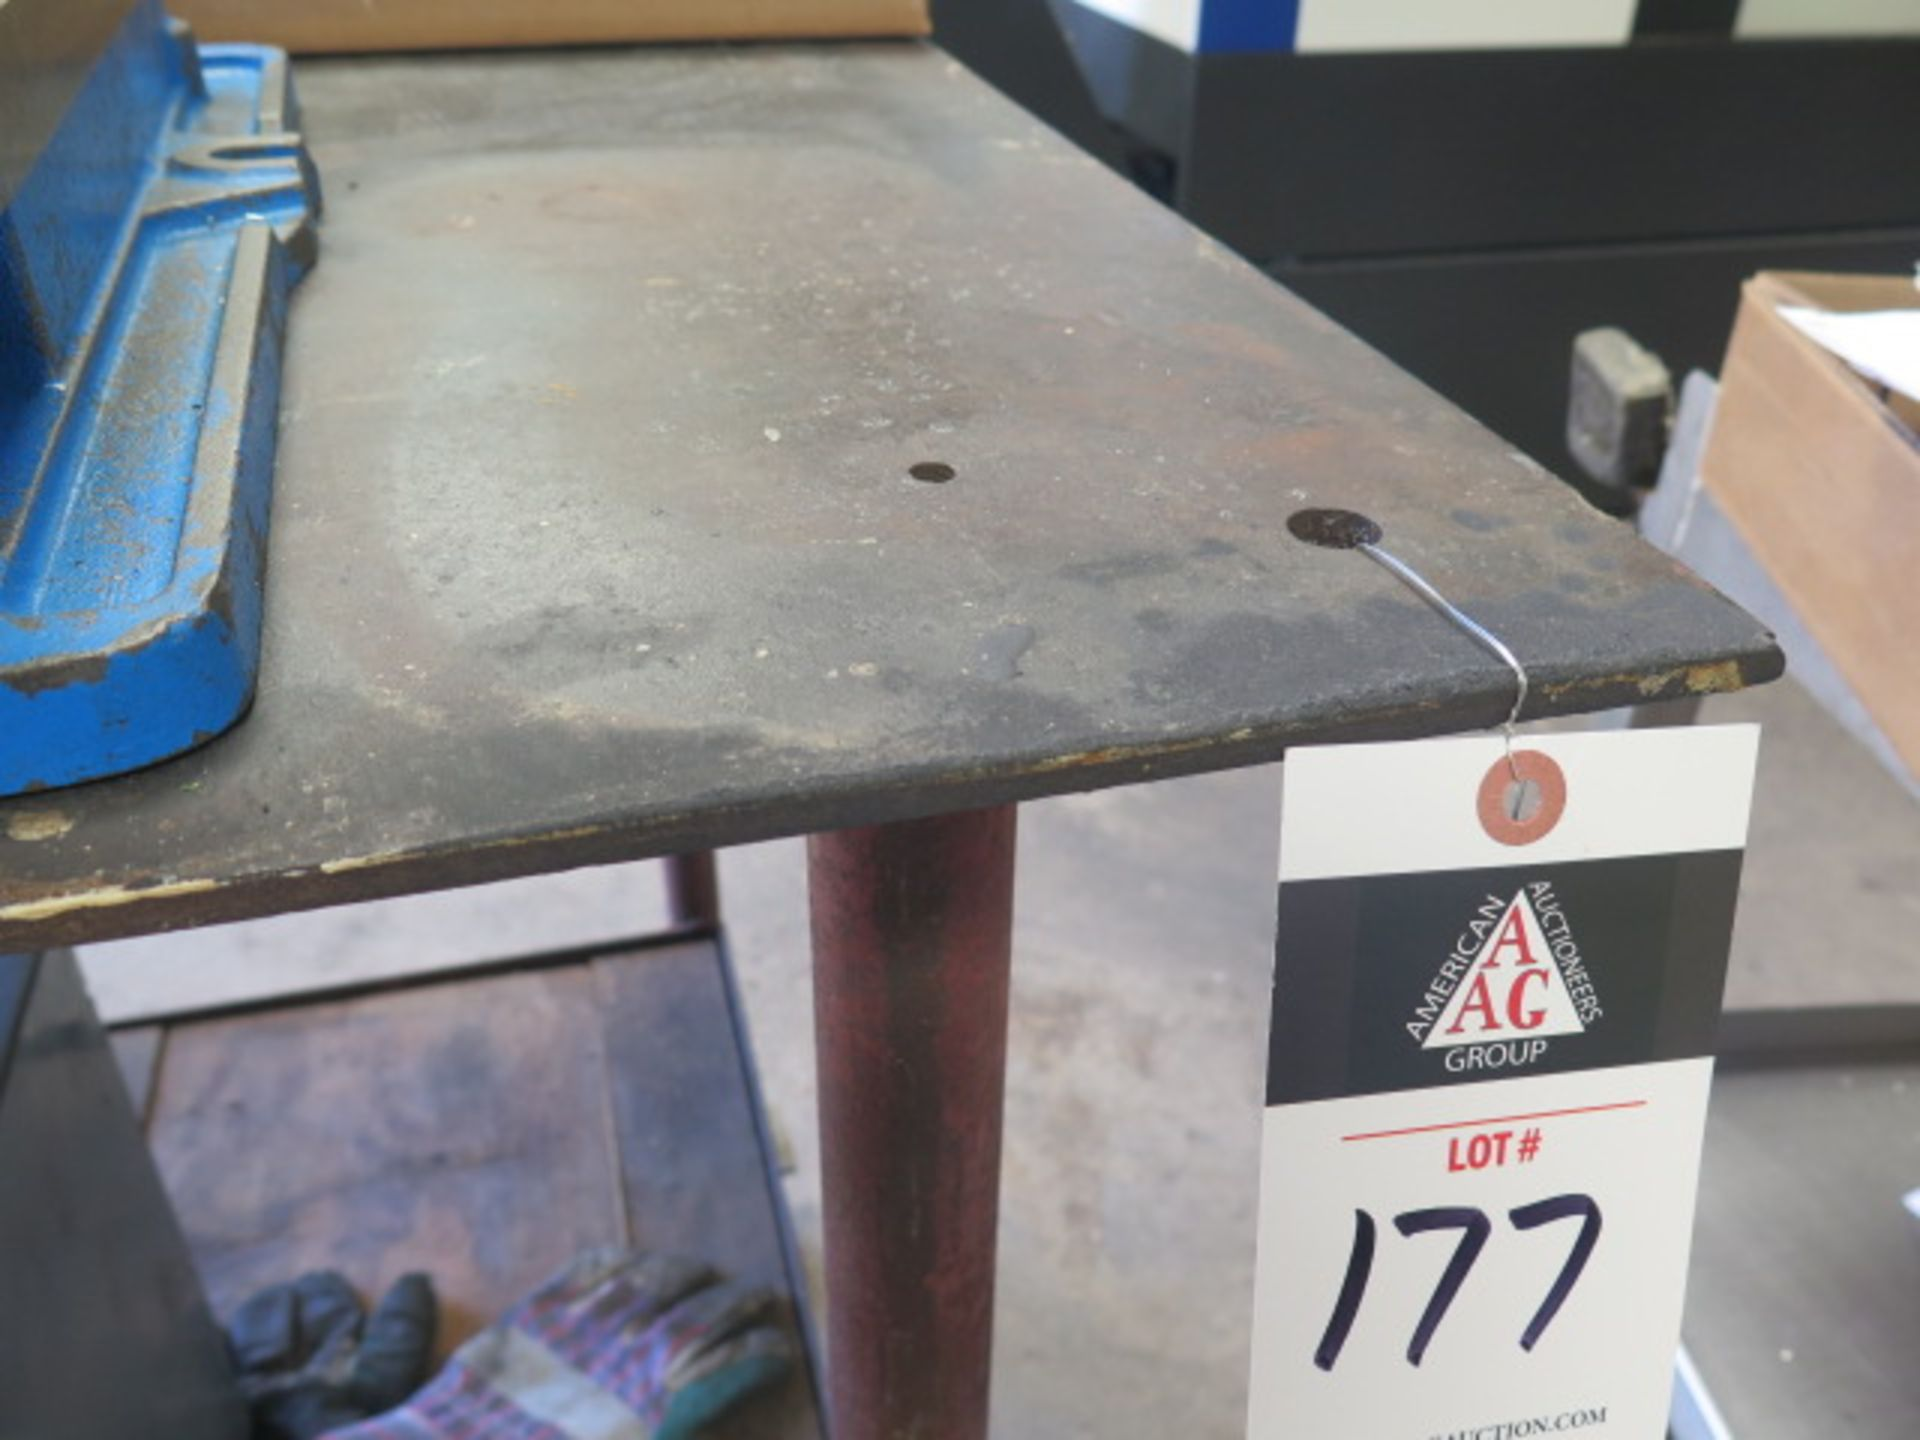 Rolling Steel Table (SOLD AS-IS - NO WARRANTY) - Image 2 of 3